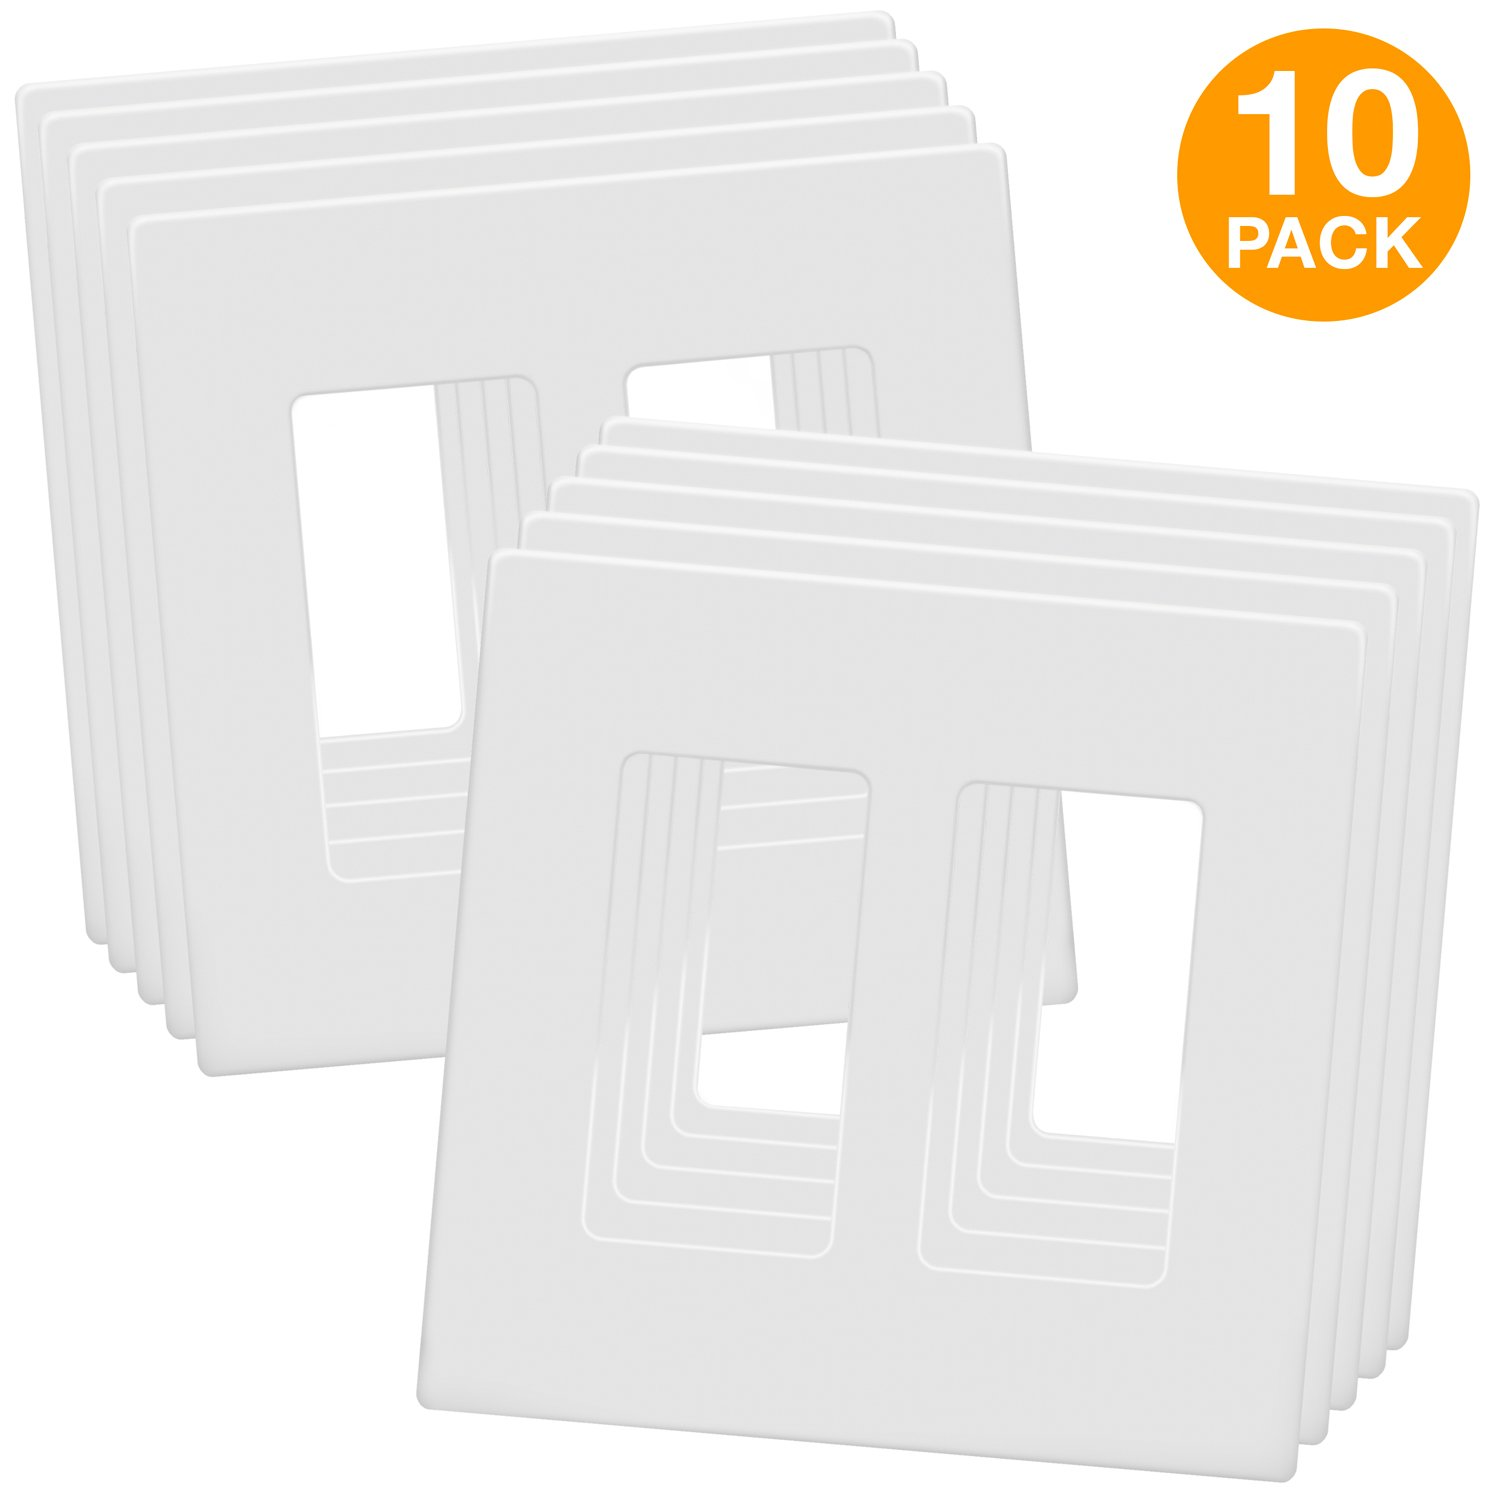 Enerlites SI8832-W-10PCS Screwless Cover Child Safe Decorator Wall Plate, Standard Size 2-Gang, Unbreakable Polycarbonate Thermoplastic, White (10 Pack)